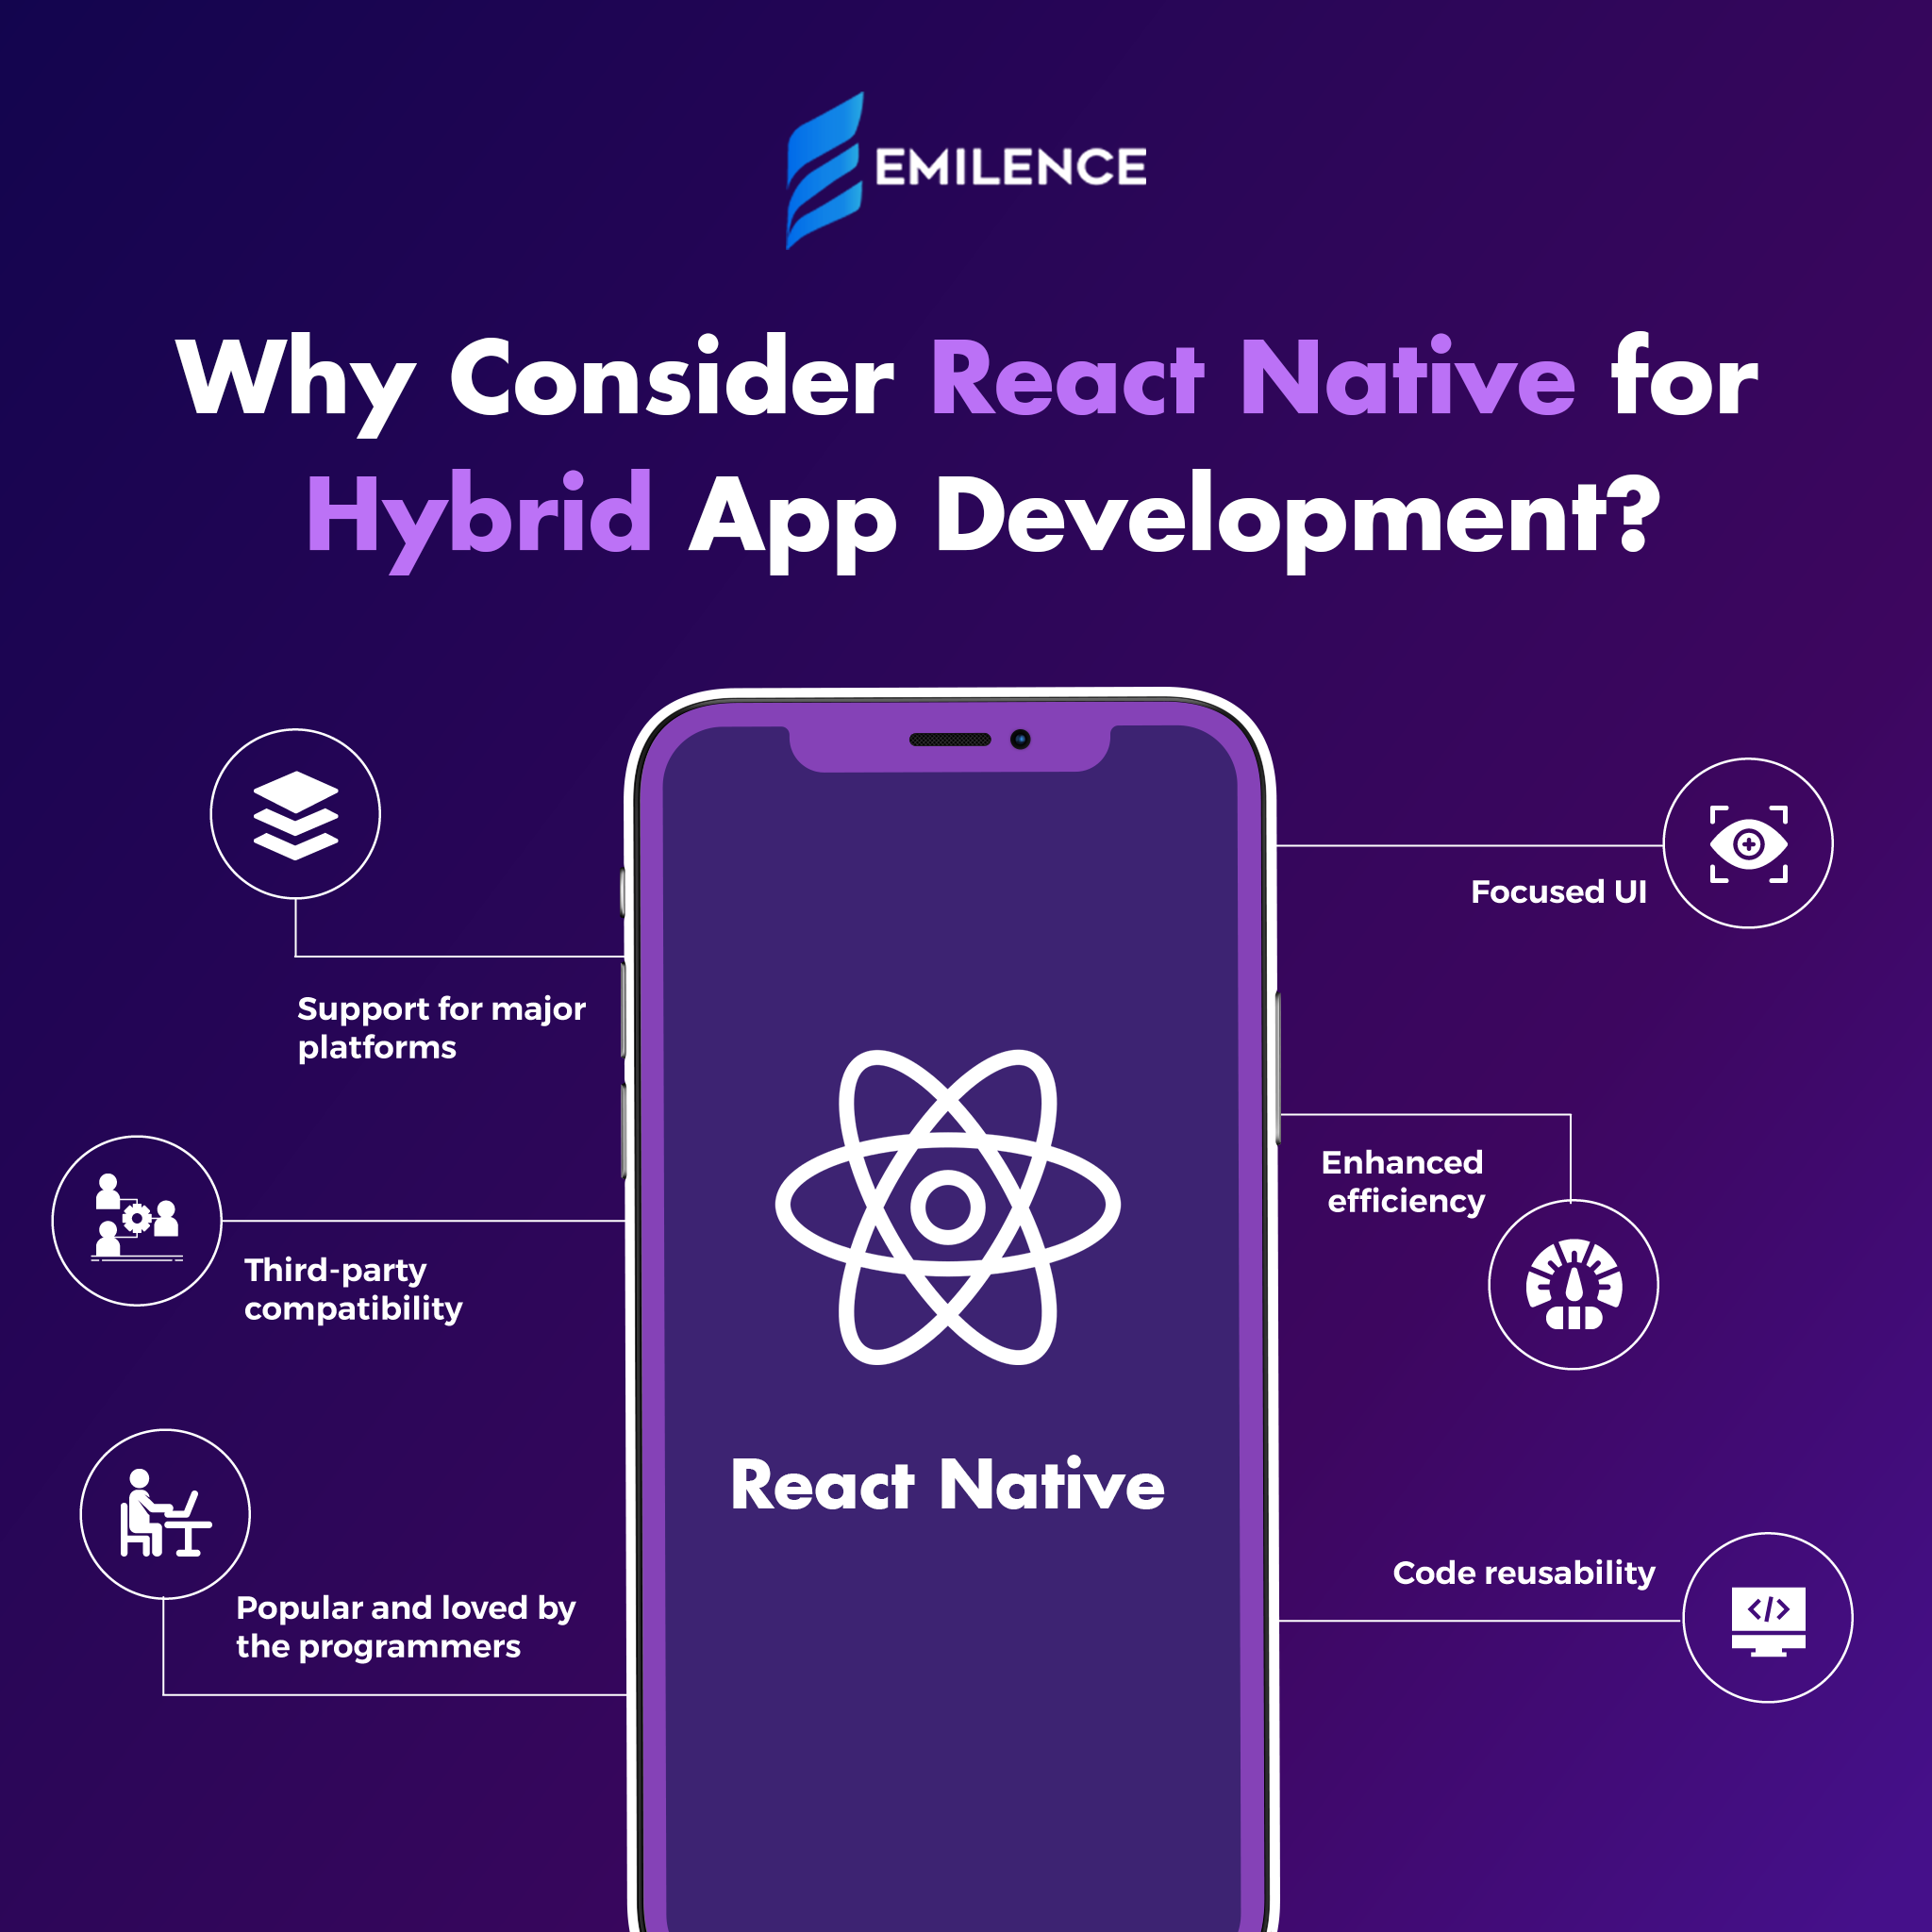 Why Consider React Native for Hybrid App Development